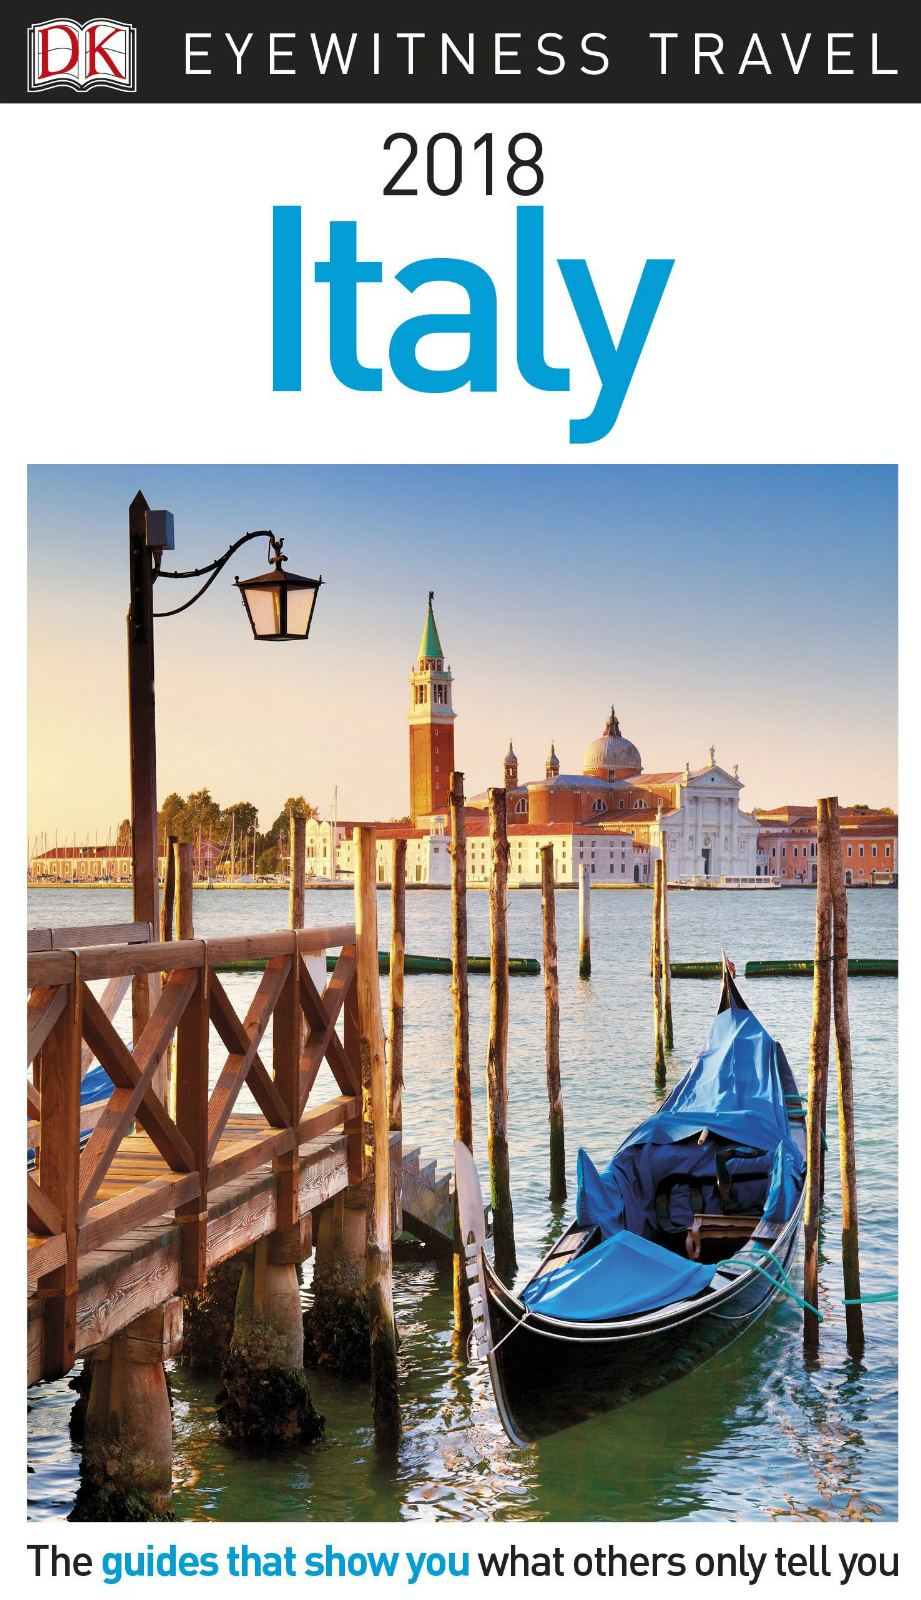 Ino Store Porto Vecchio dk eyewitness) travel guide - italy pages 301 - 350 - text